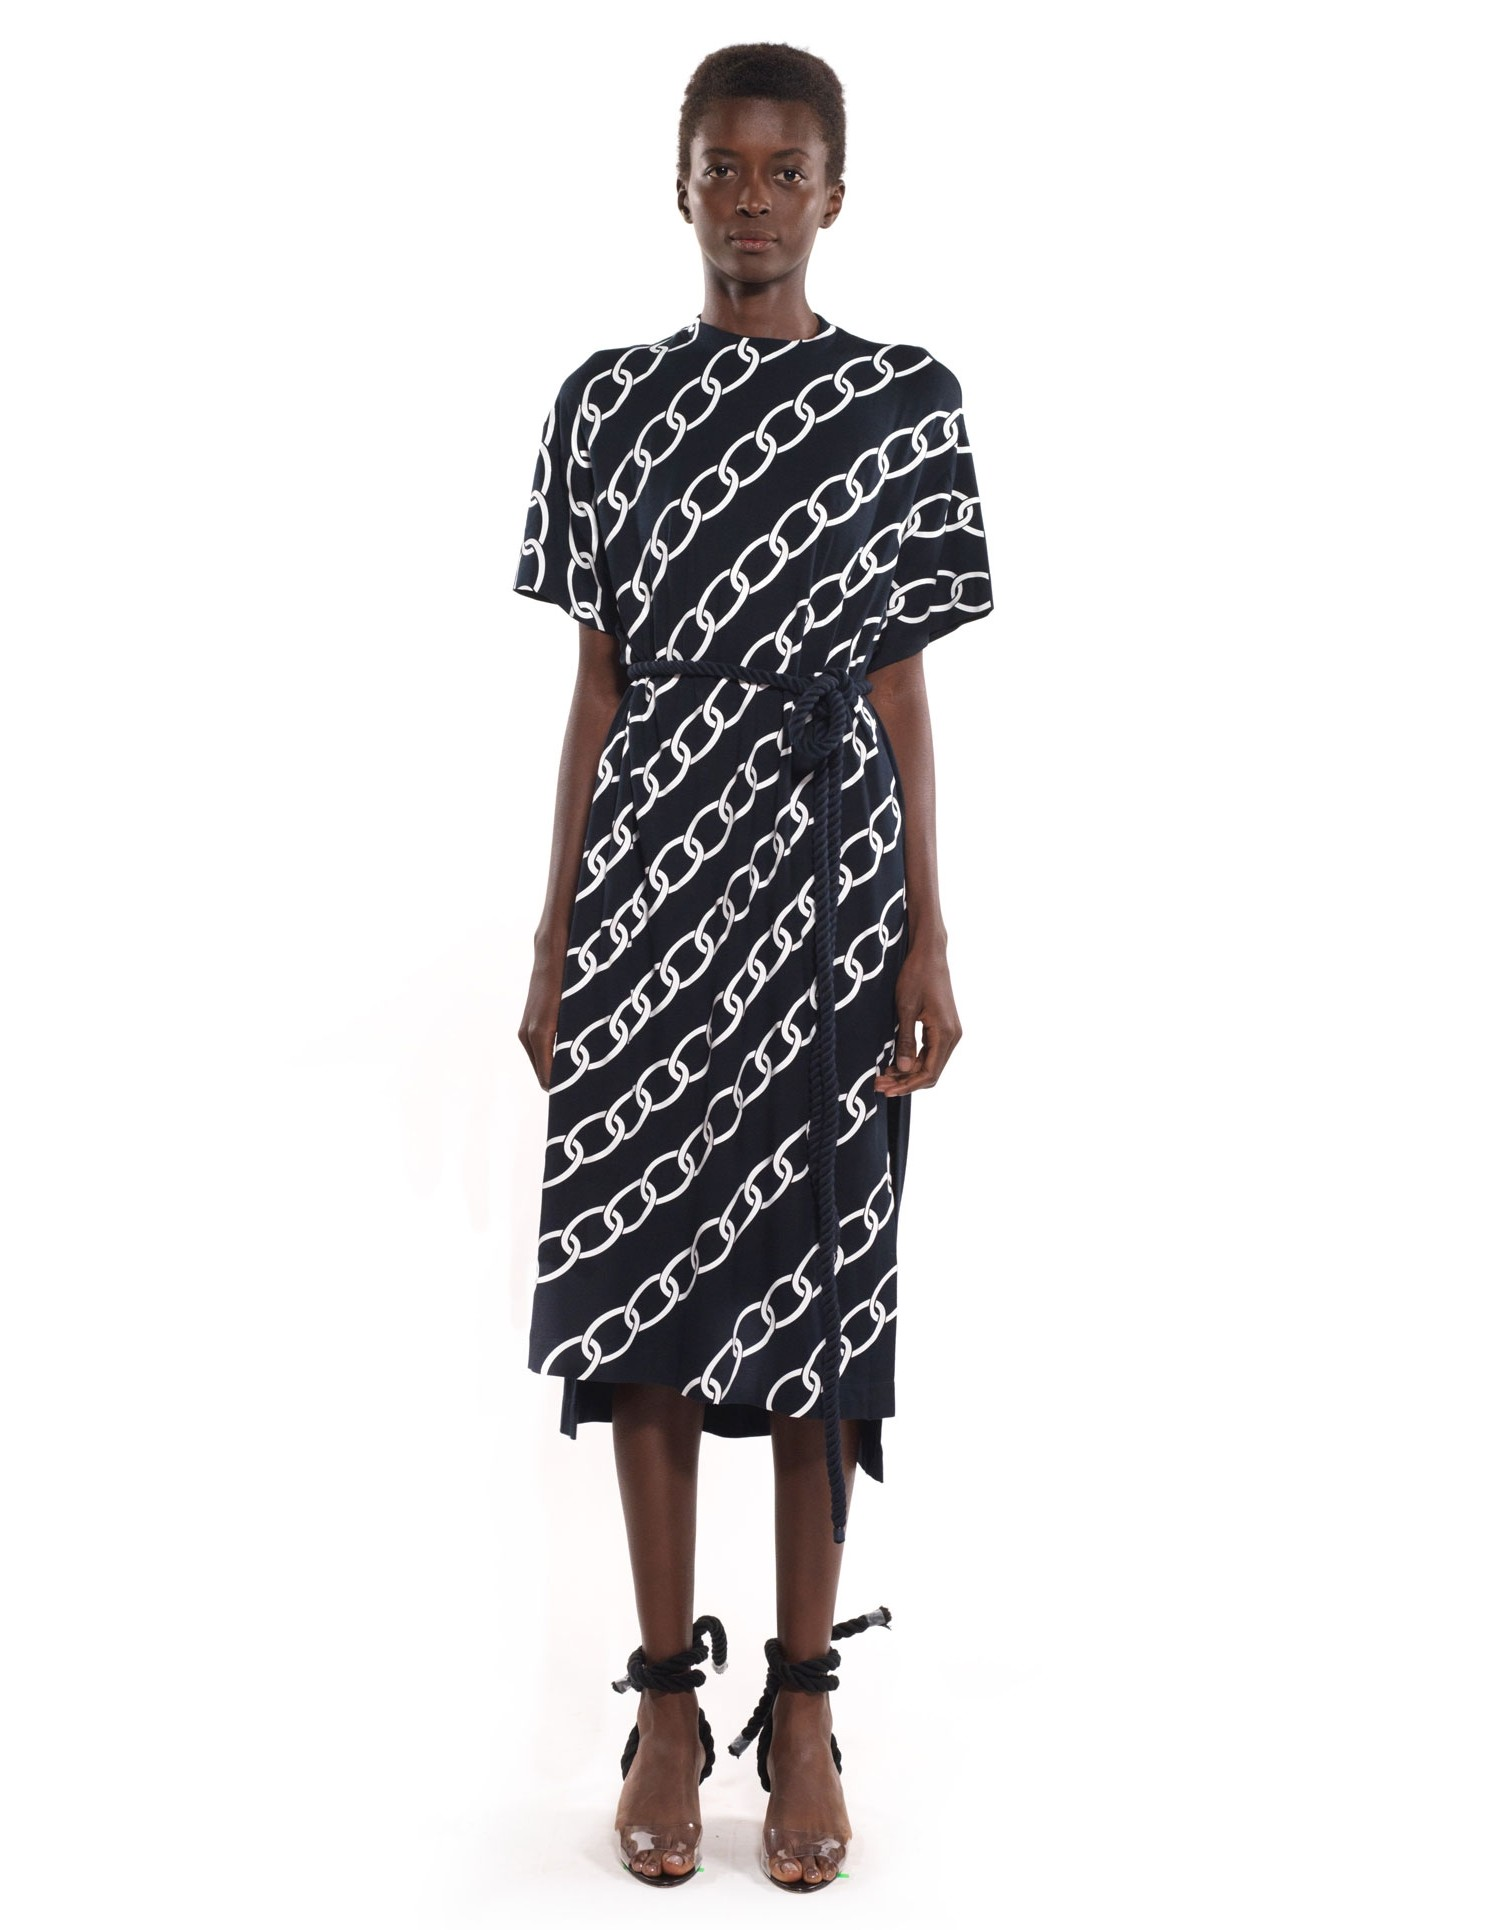 MONSE Chain Print Long Tee on Model Front View